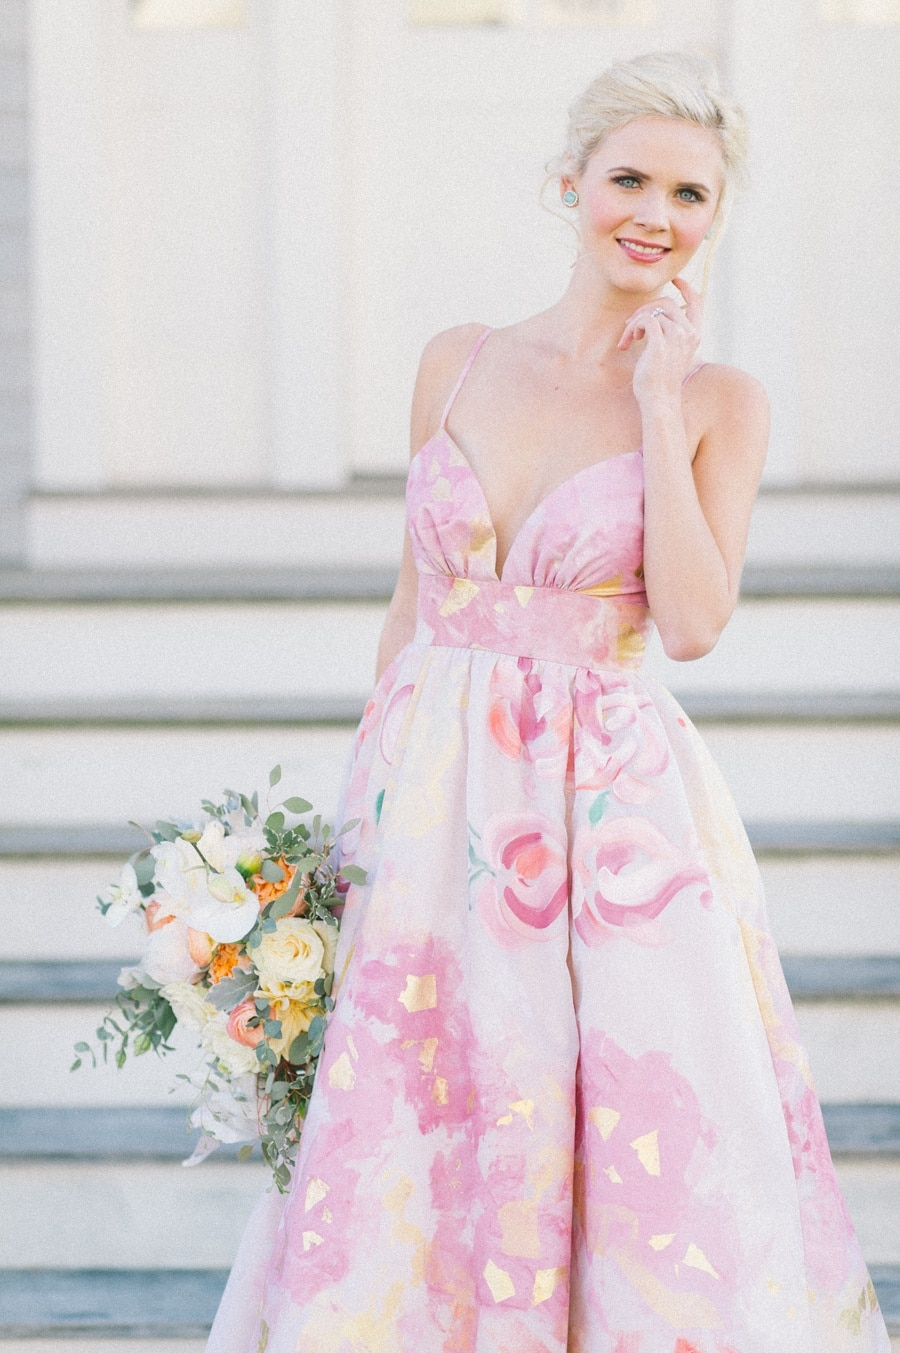 Playful Pink And Gold Preppy Bridal Shoot Hey Wedding Lady